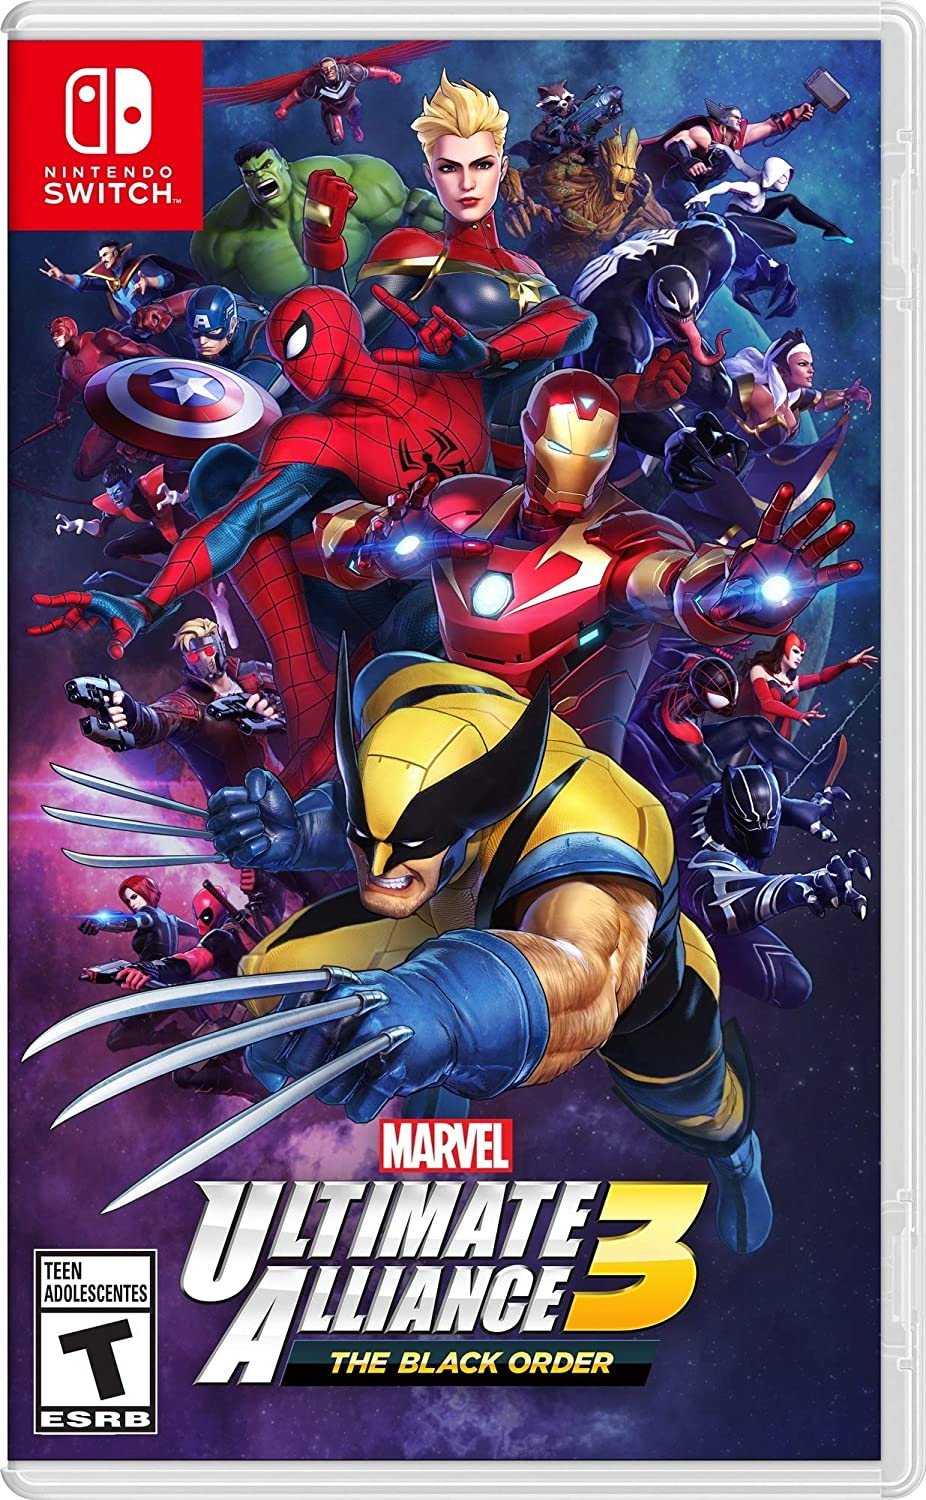 Marvel Ultimate Alliance 3: The Black Order for Nintendo Switch USA: Amazon.es: Nintendo of America: Cine y Series TV